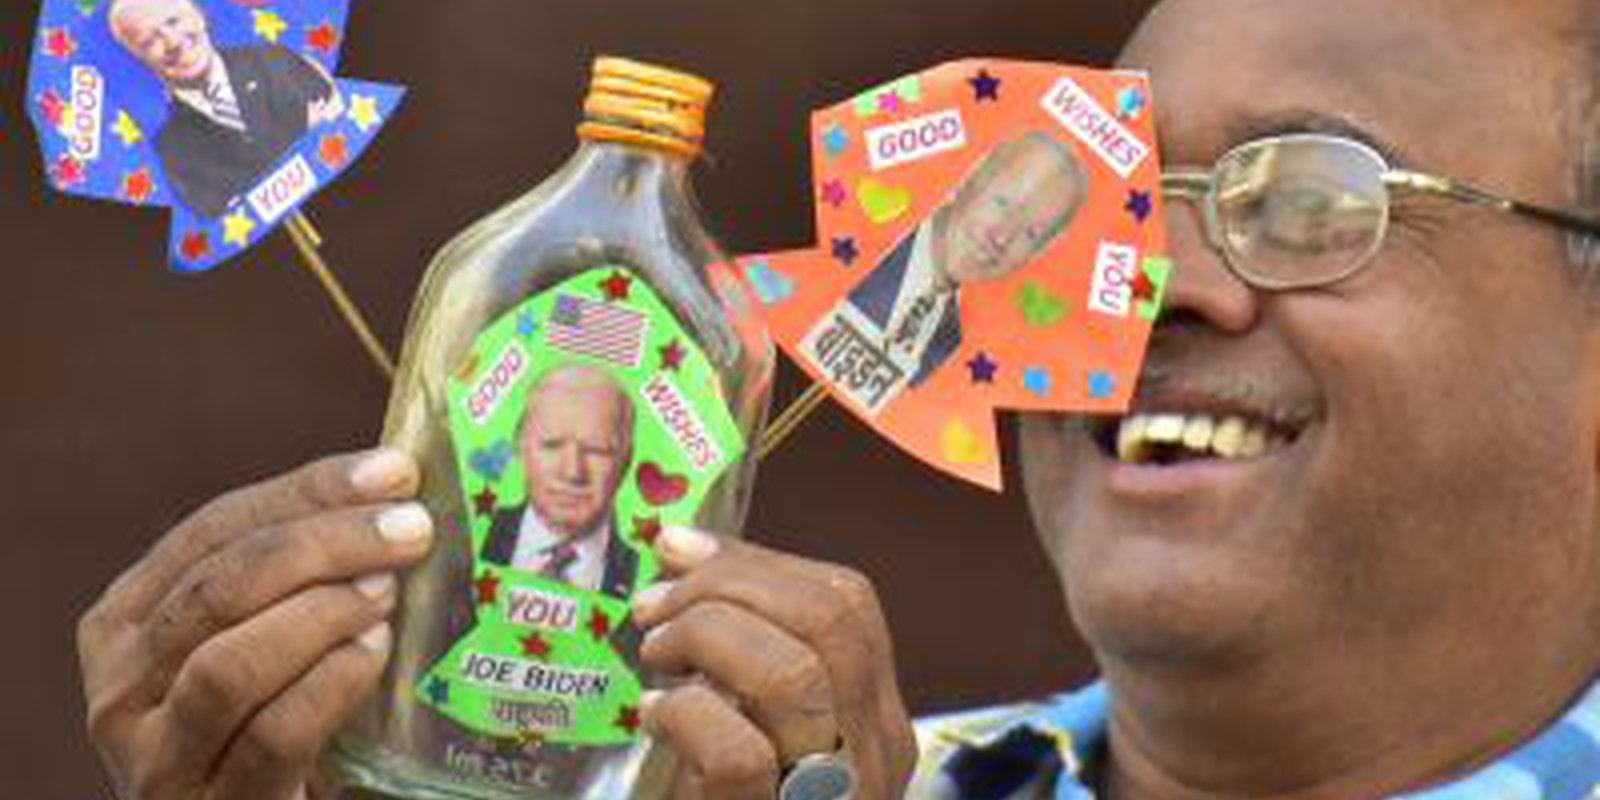 Image — Entrepreneur Jagmohan Kanojia displays his miniature kites supporting Joe Biden's election as US president in Amritsar, India. Photo by Sameer Sehgal/Hindustan Times via Getty Images.